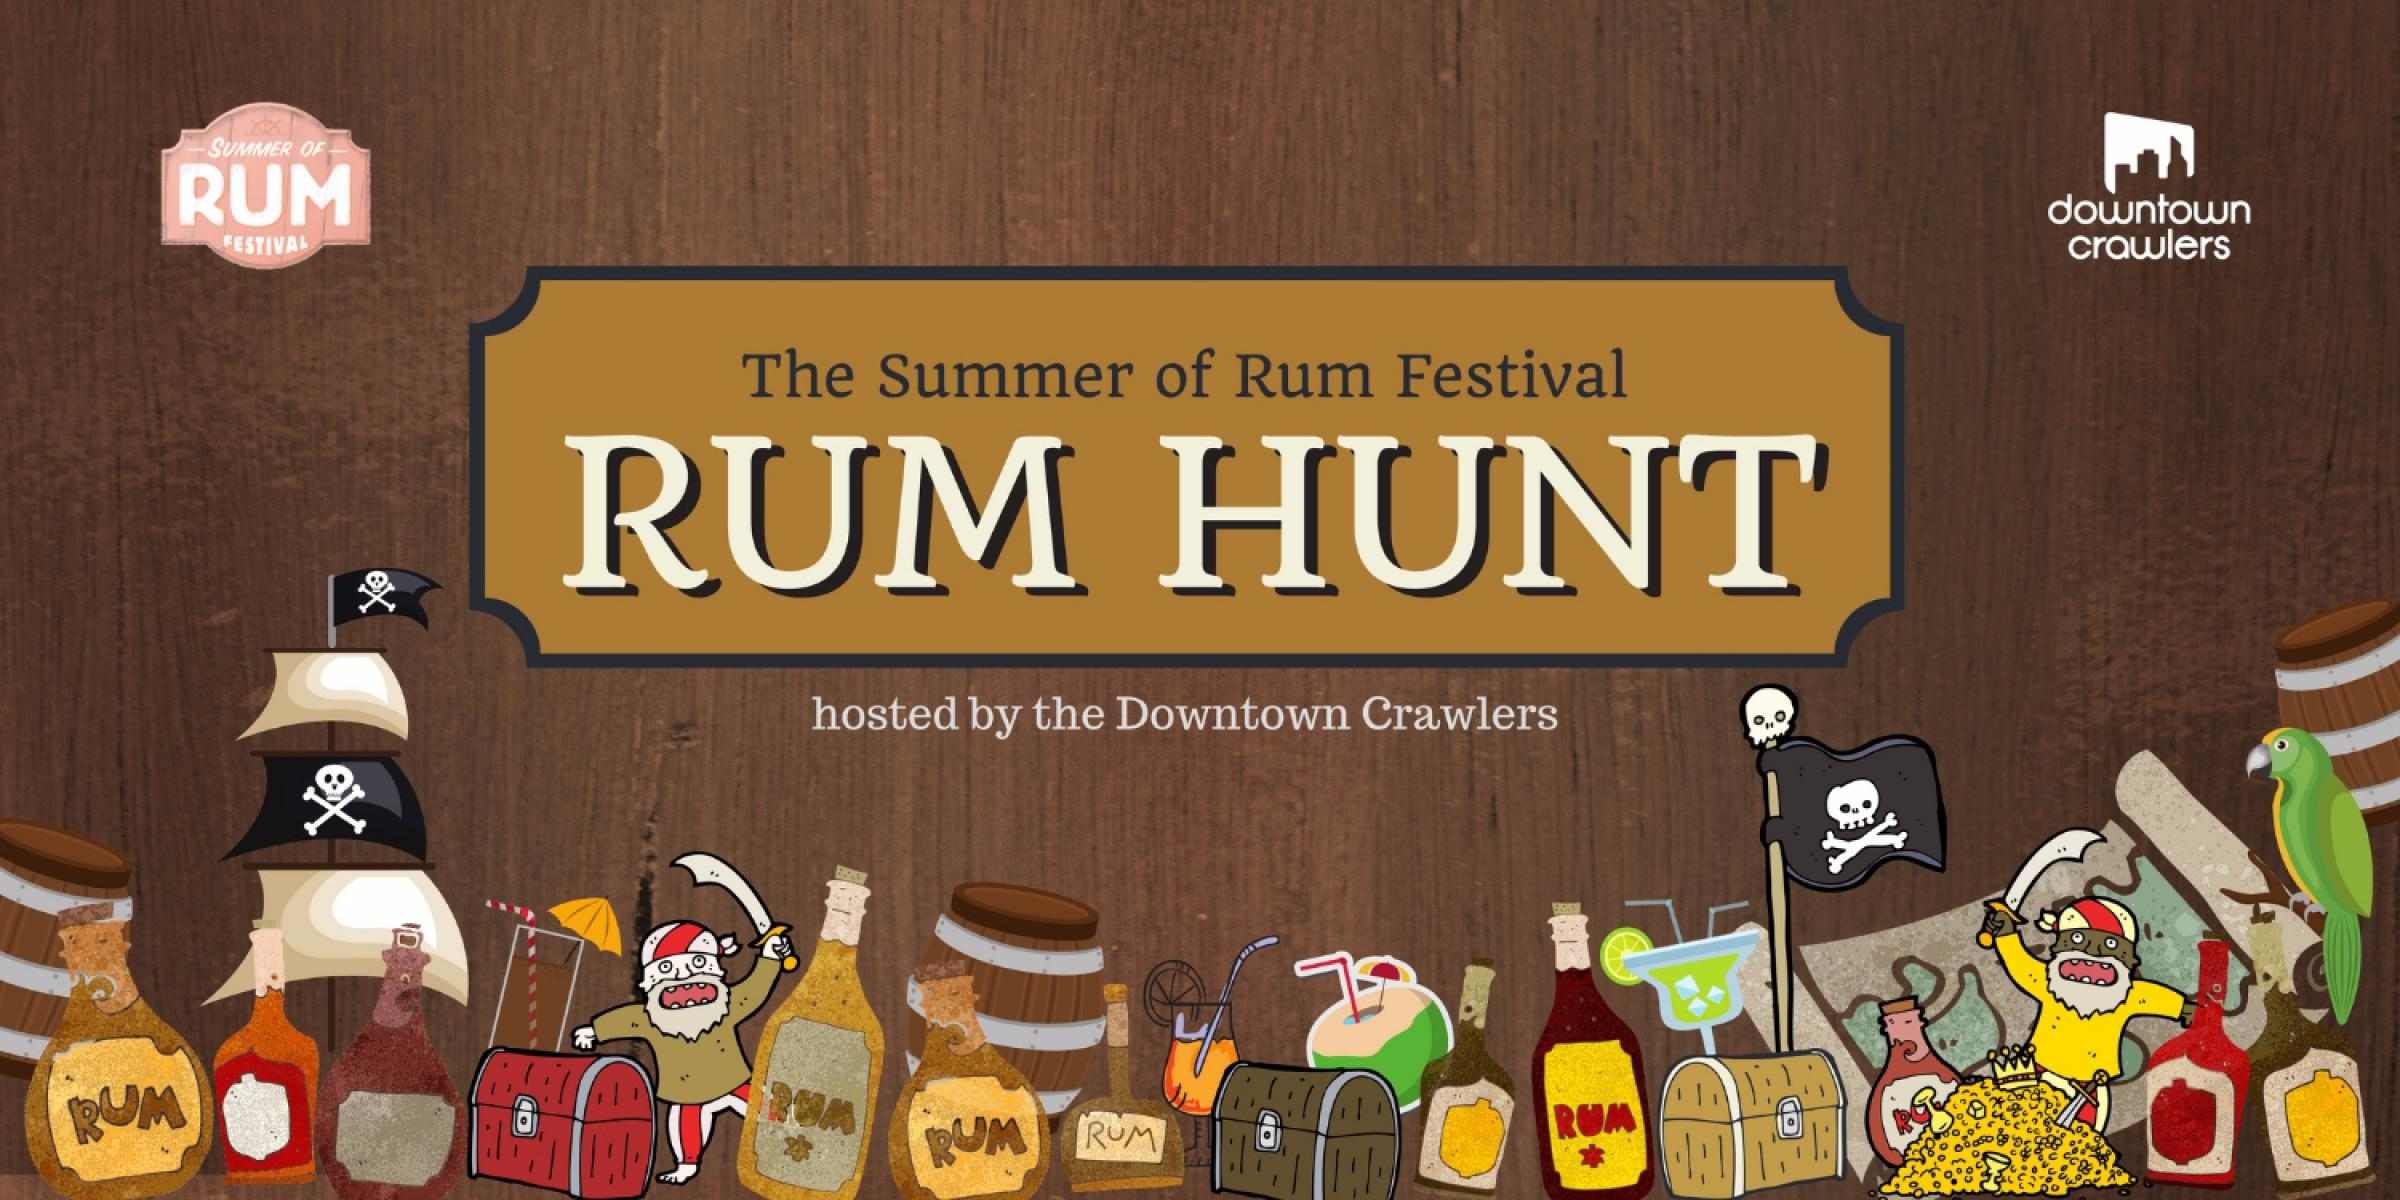 Summer of Rum Festival - Rum Hunt